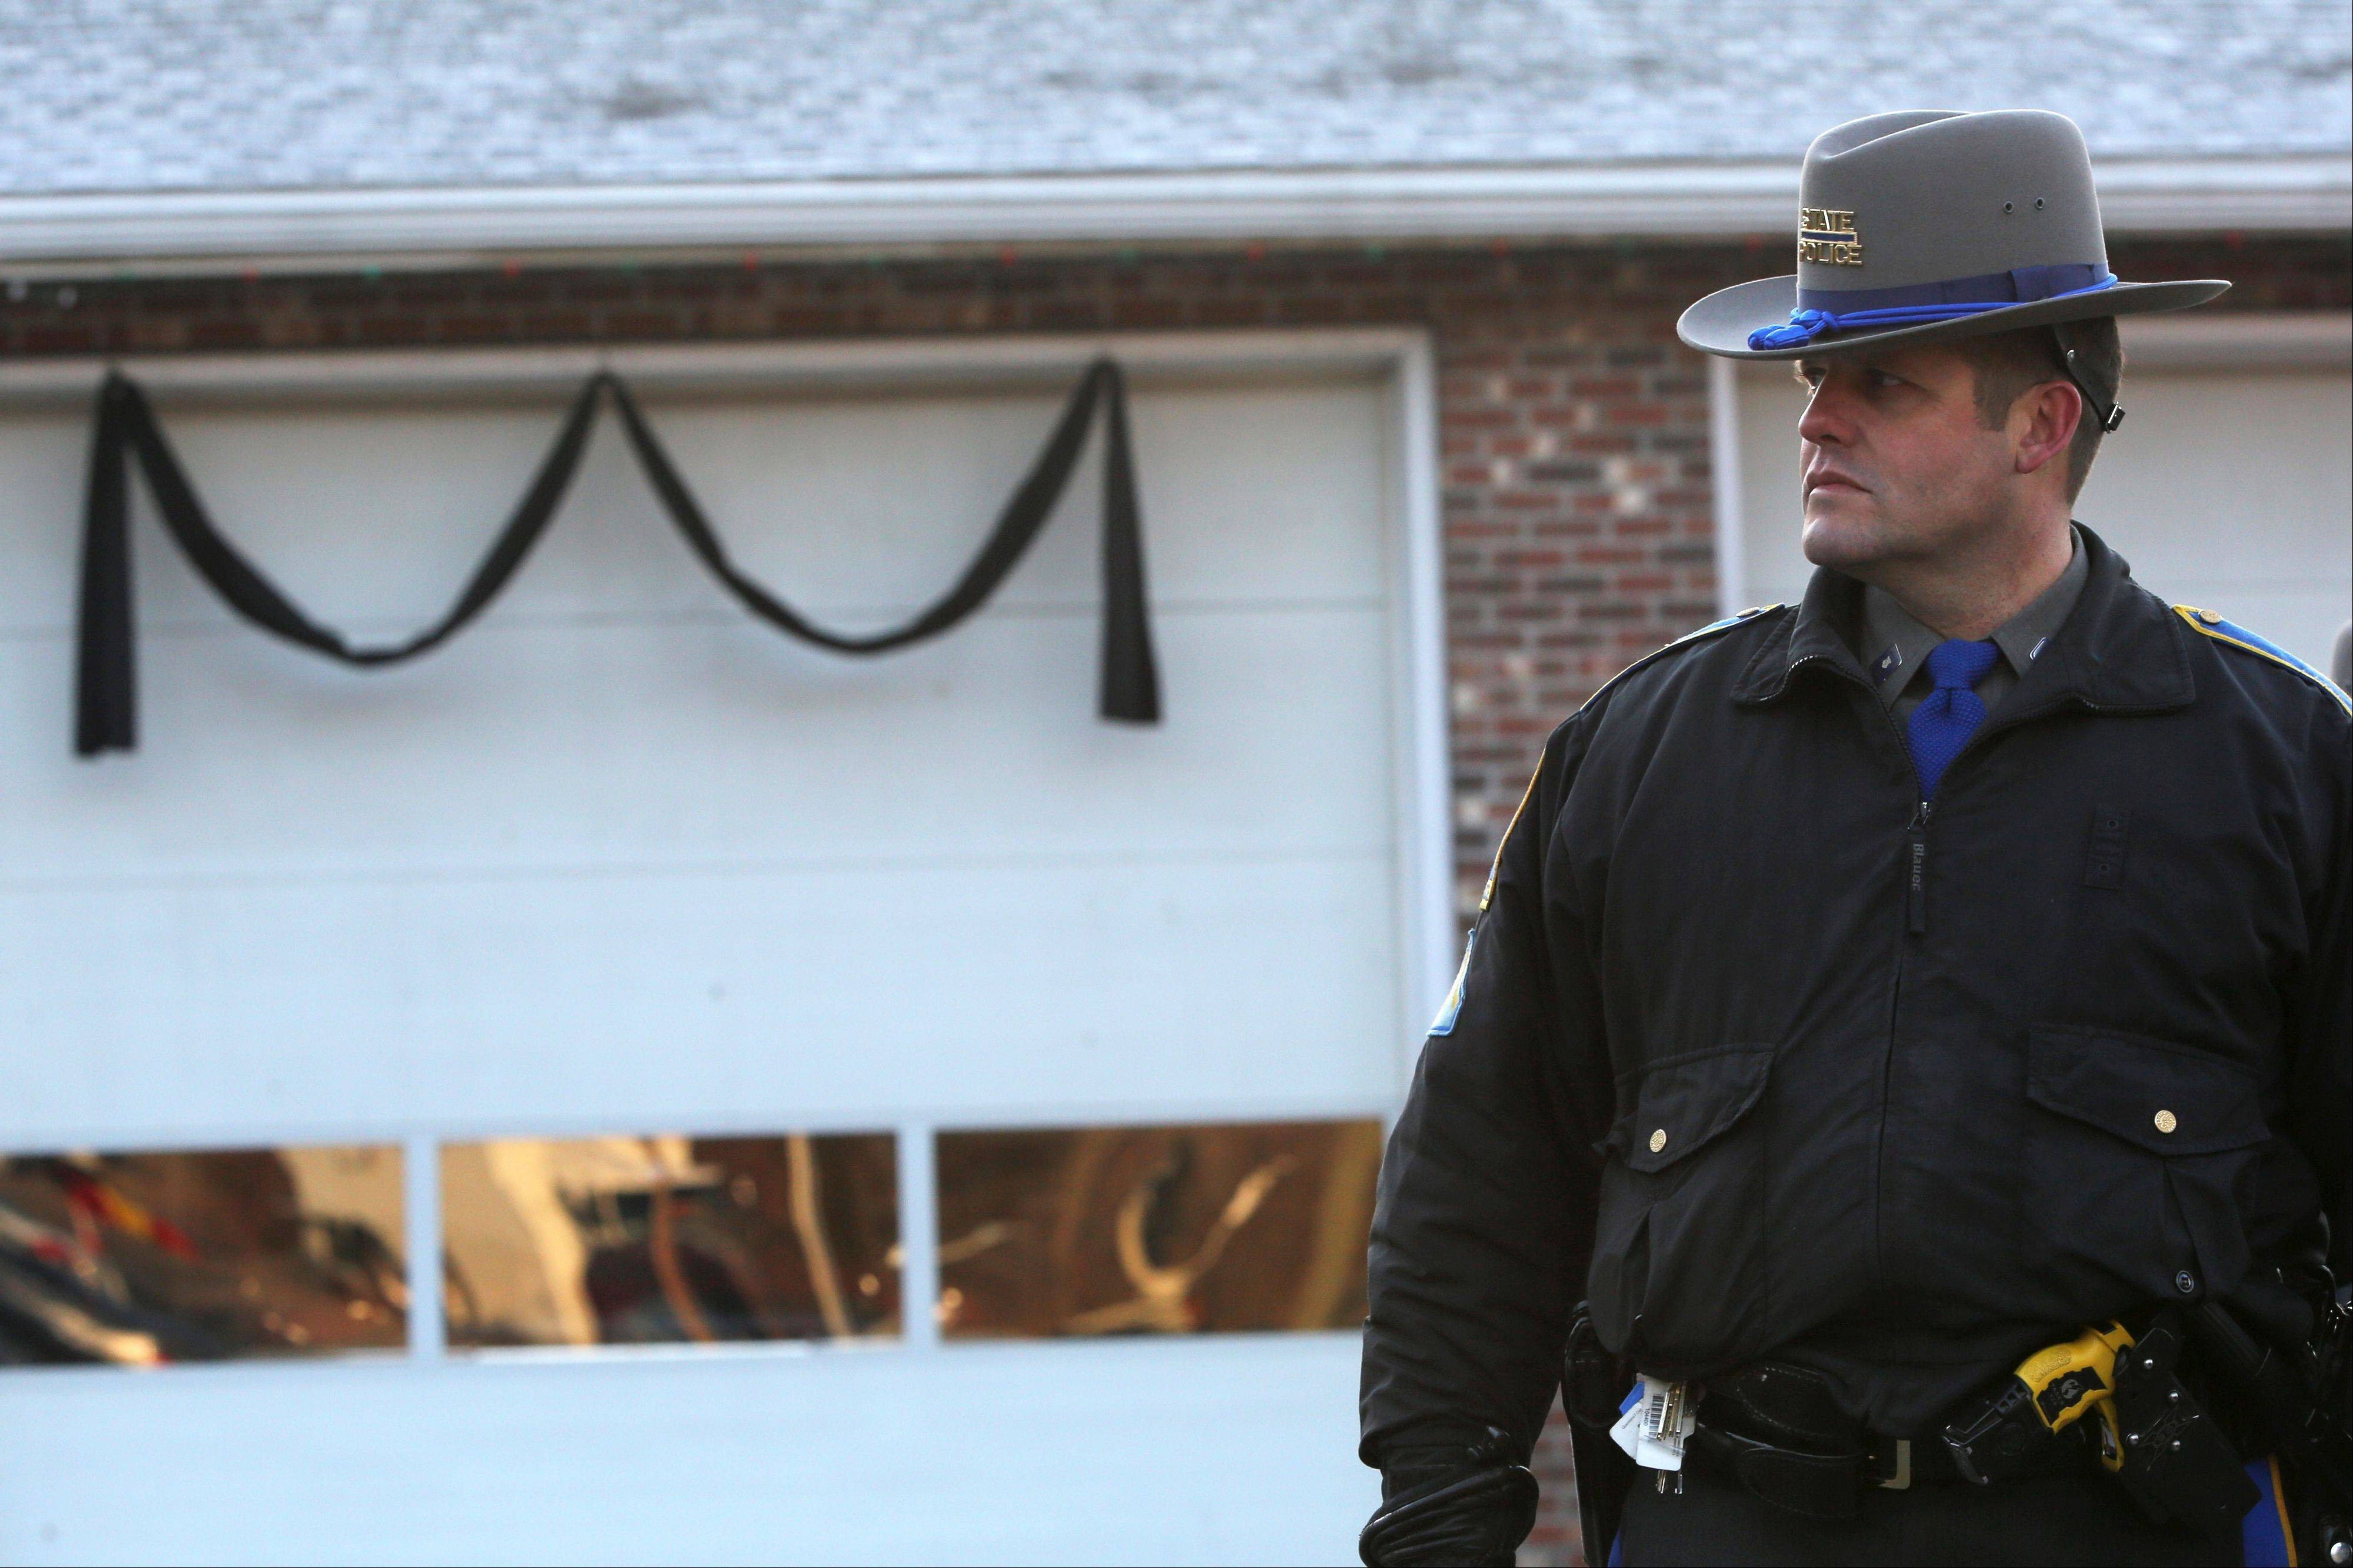 Bunting hangs on the Sandy Hook fire house as a Connecticut State Trooper stands guard outside, Saturday, Dec. 15.